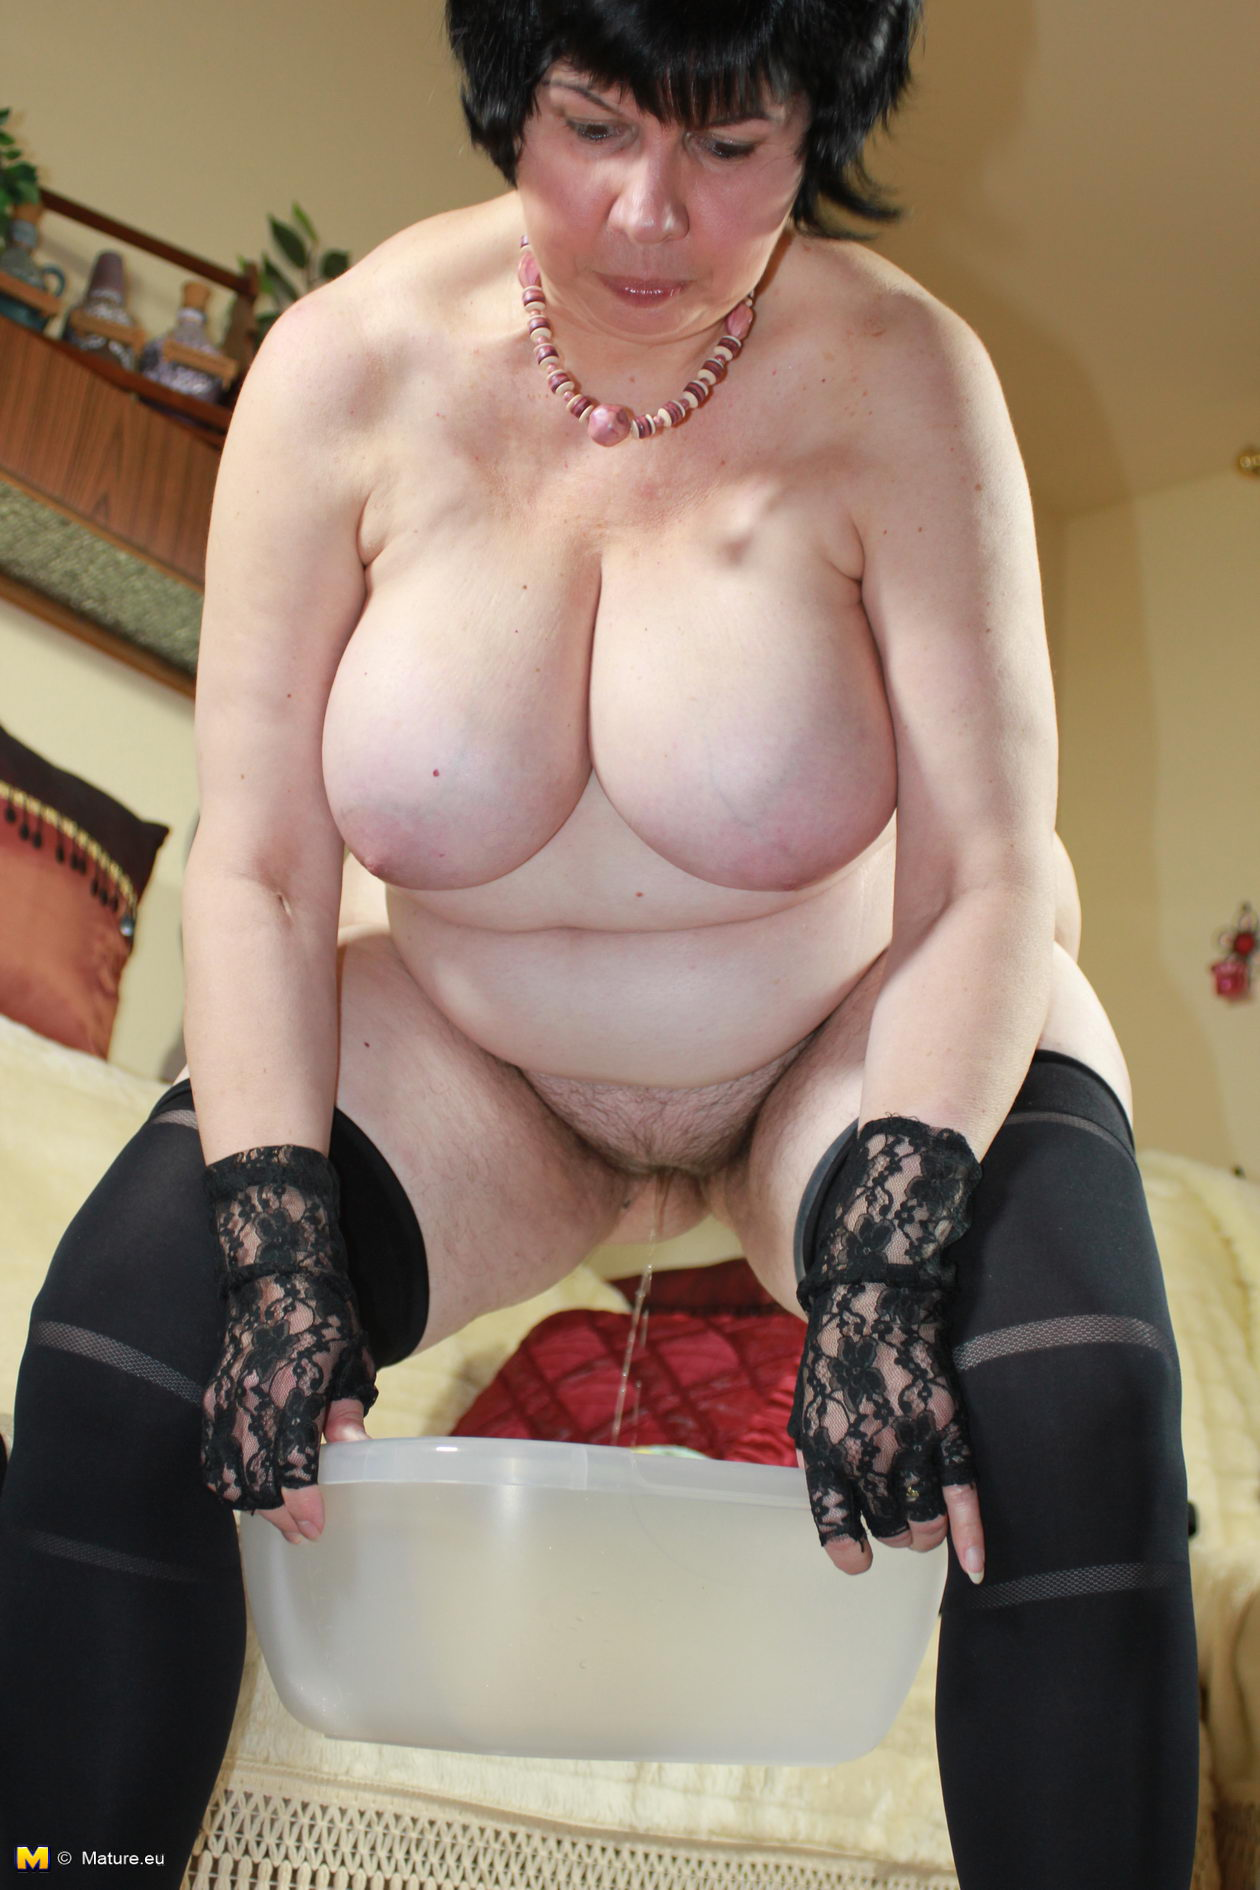 big breasted housewife playing with her naked body - grannypornpics